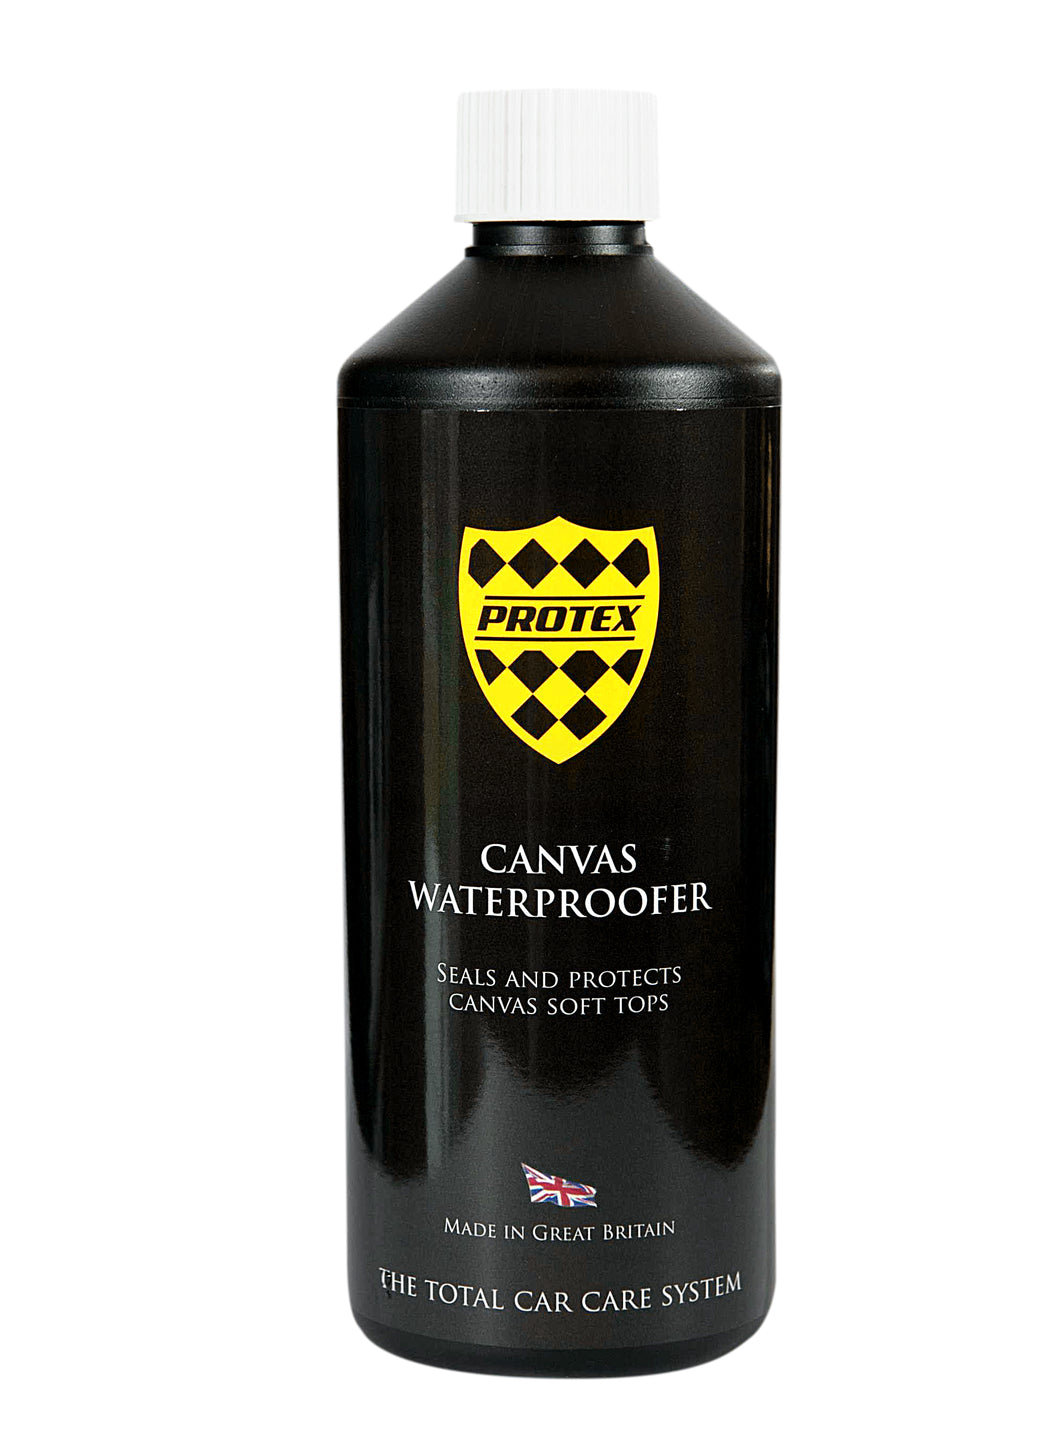 Protex Convertible Soft Top Canvas Waterproofer 1Ltr.